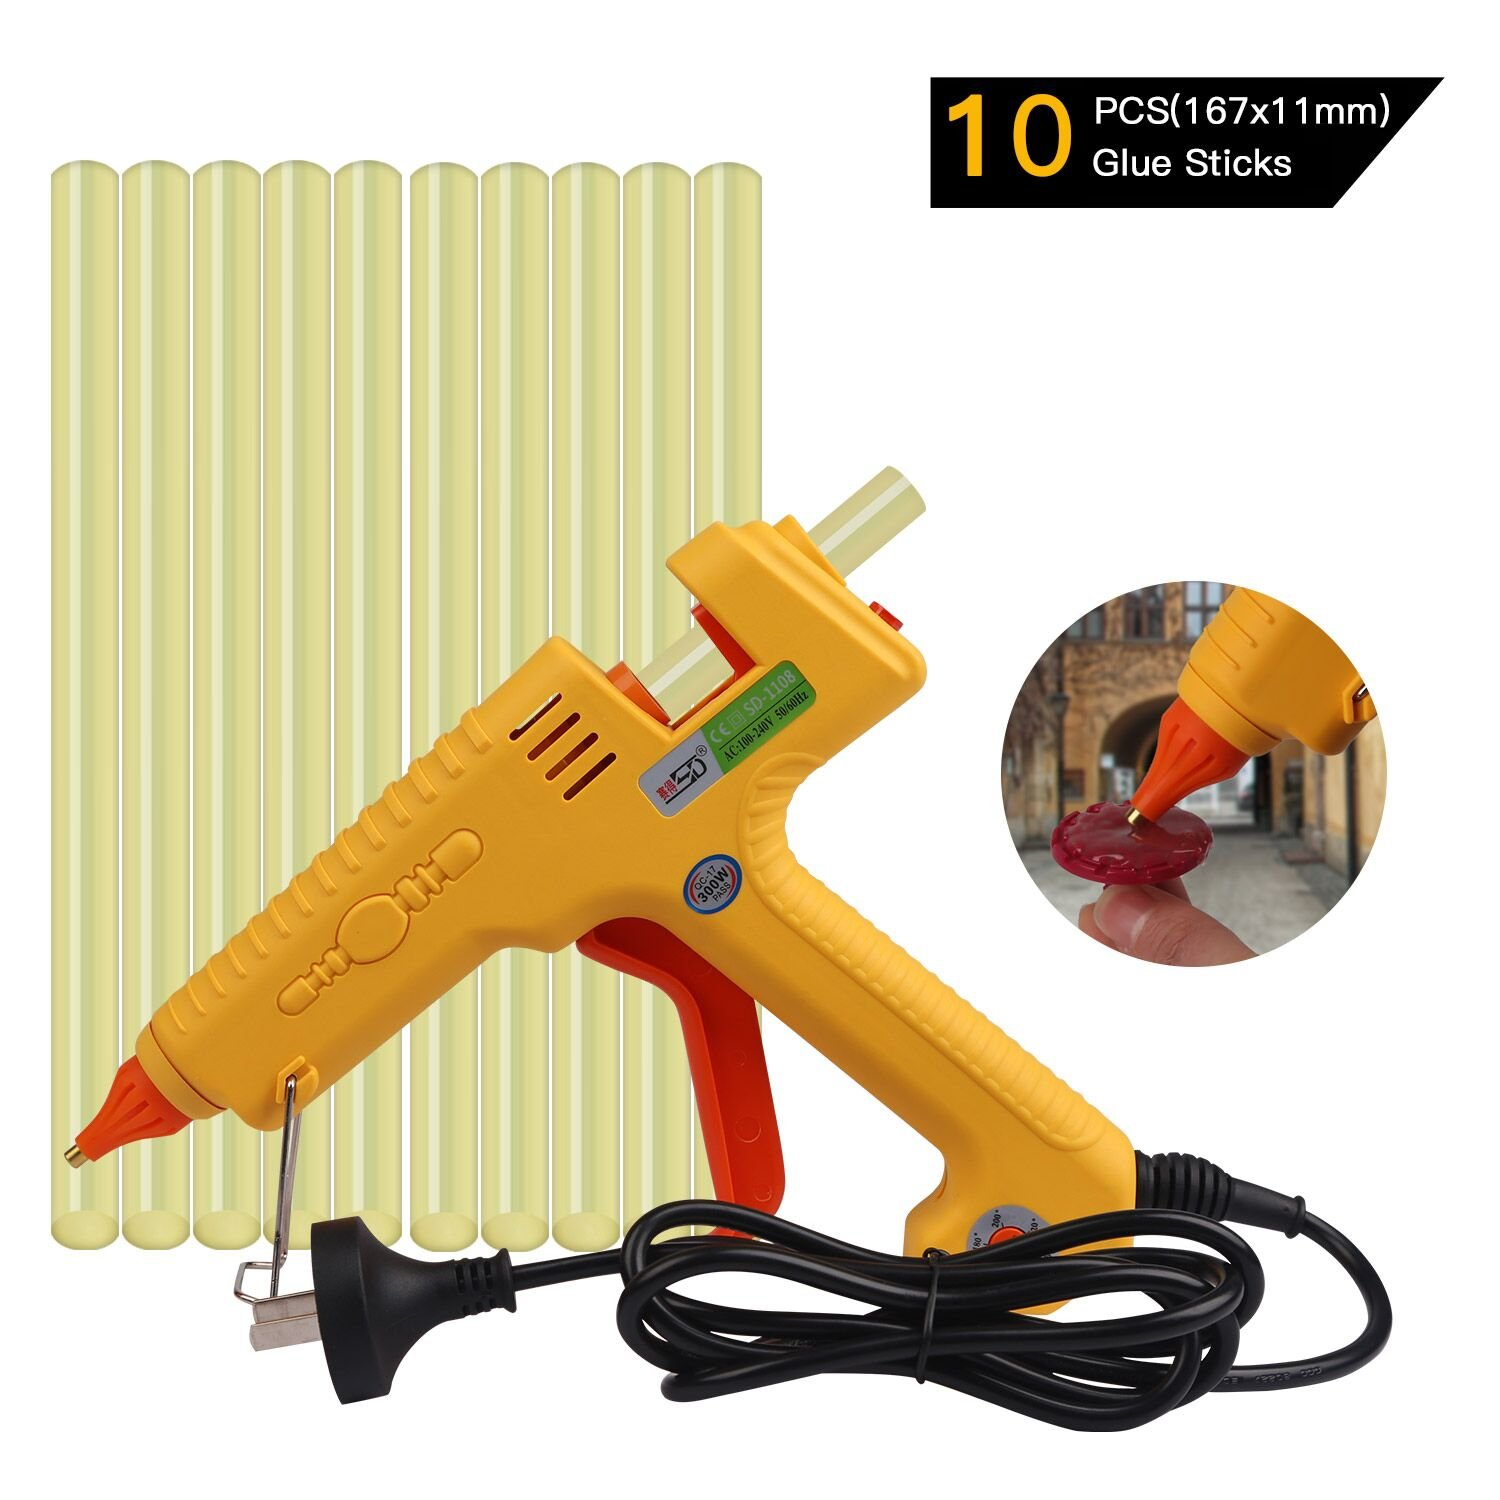 FLY5D 300W Hot Melt PDR Glue Gun With 10pcs Super Sticky Glue Sticks for Auto Metal Dent Puller Repair Home Use DIY For Arts & Crafts & Sealing and Quick Repairs (300W glue gun set)